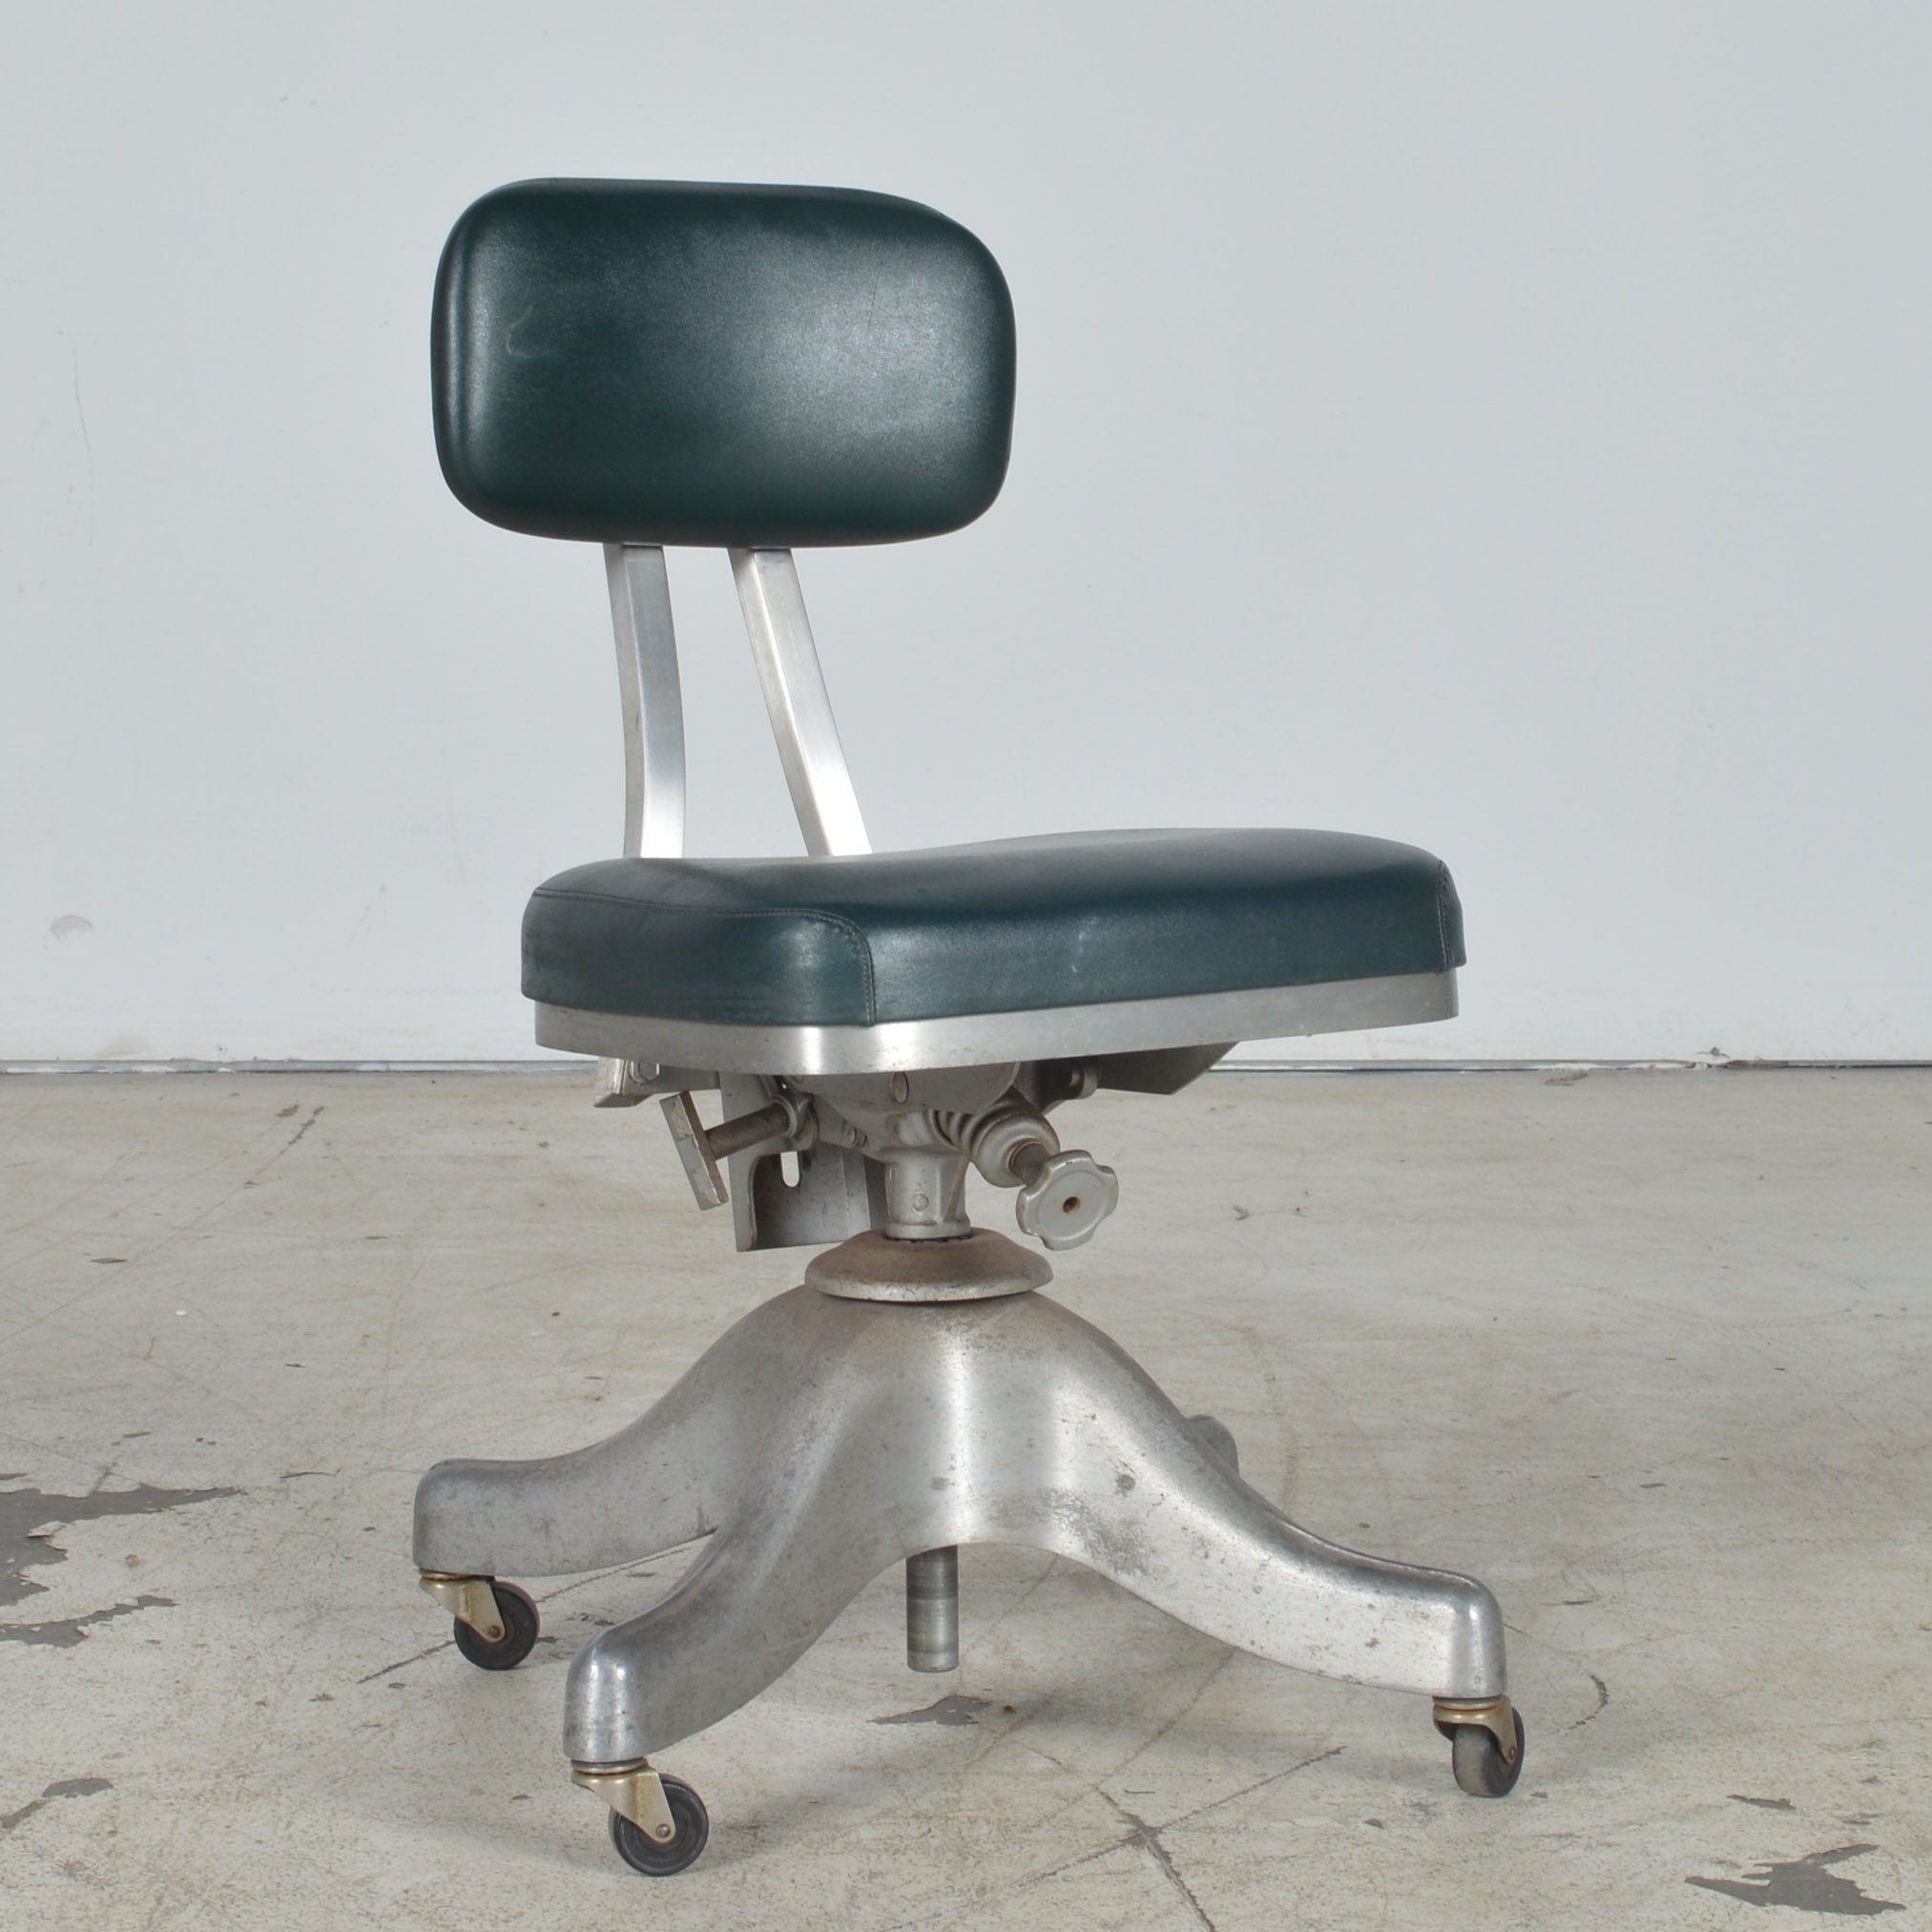 industrial style office chair. Vintage Shaw-Walker Industrial Style Office Chair S